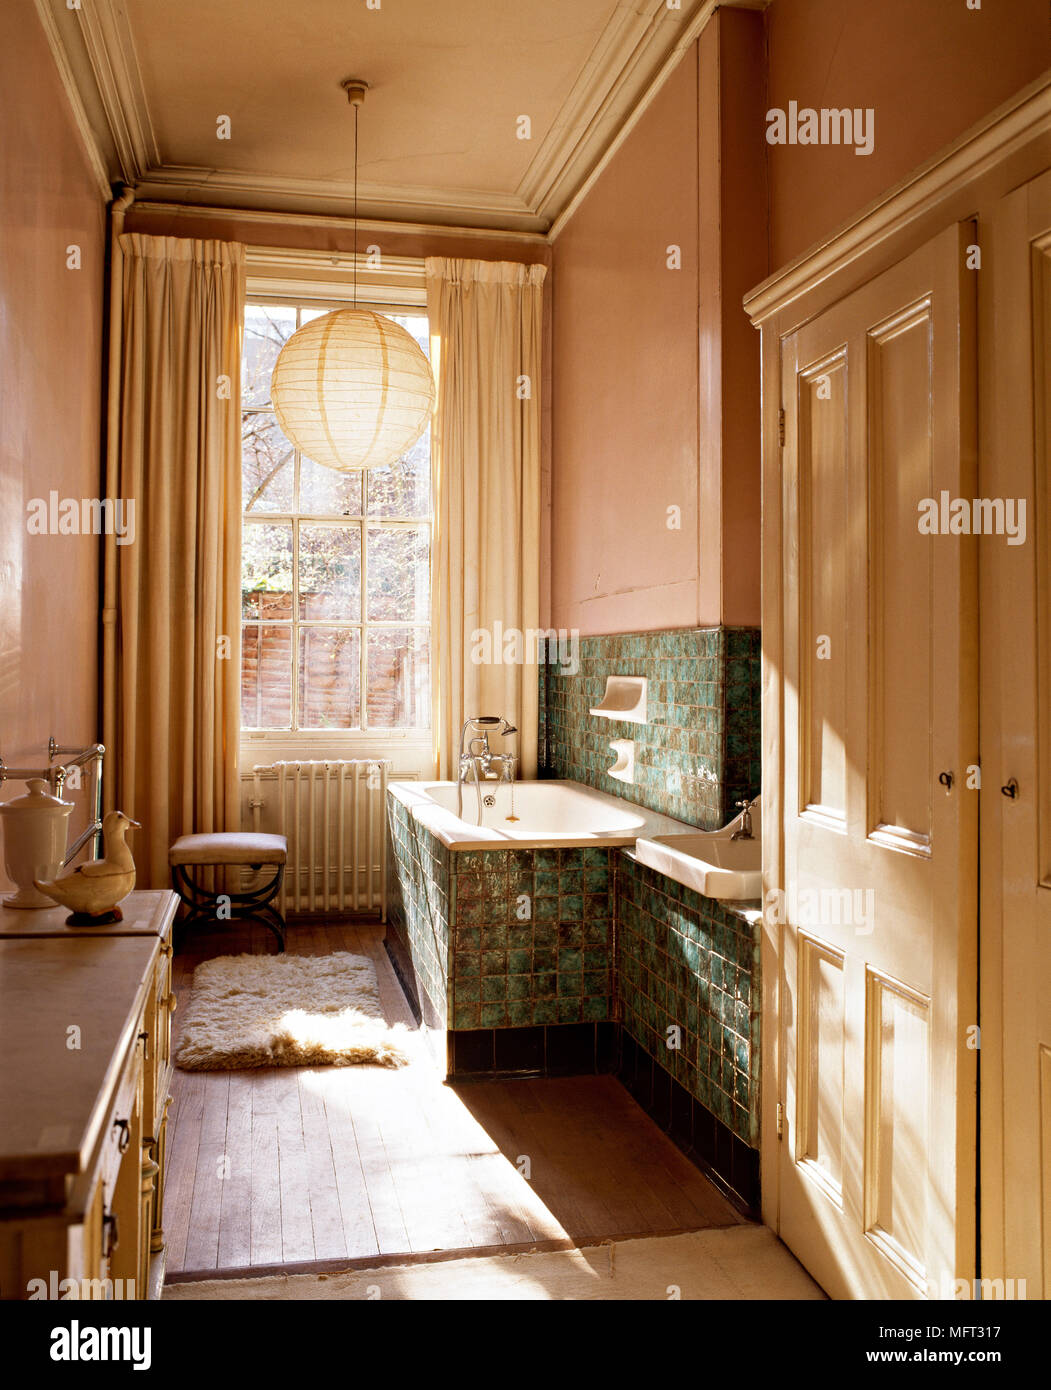 Traditionelle Badezimmer Badewanne In Fliesen Set Surround Vorhange